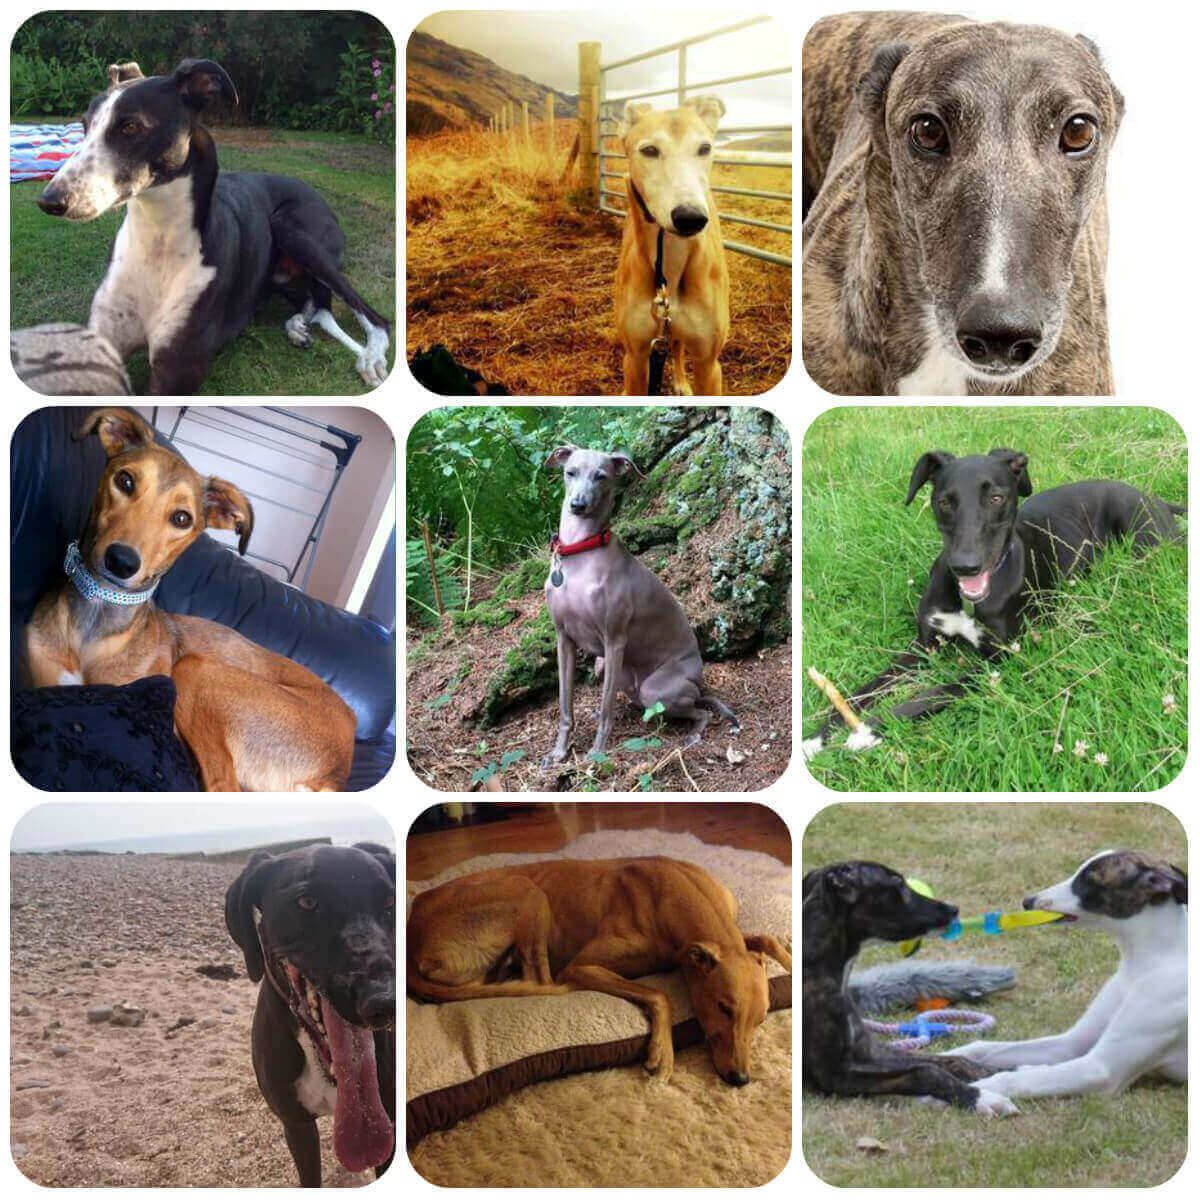 A collage of greyhound dogs and puppies. Part of BorrowMyDoggy's guide to dog breeds.